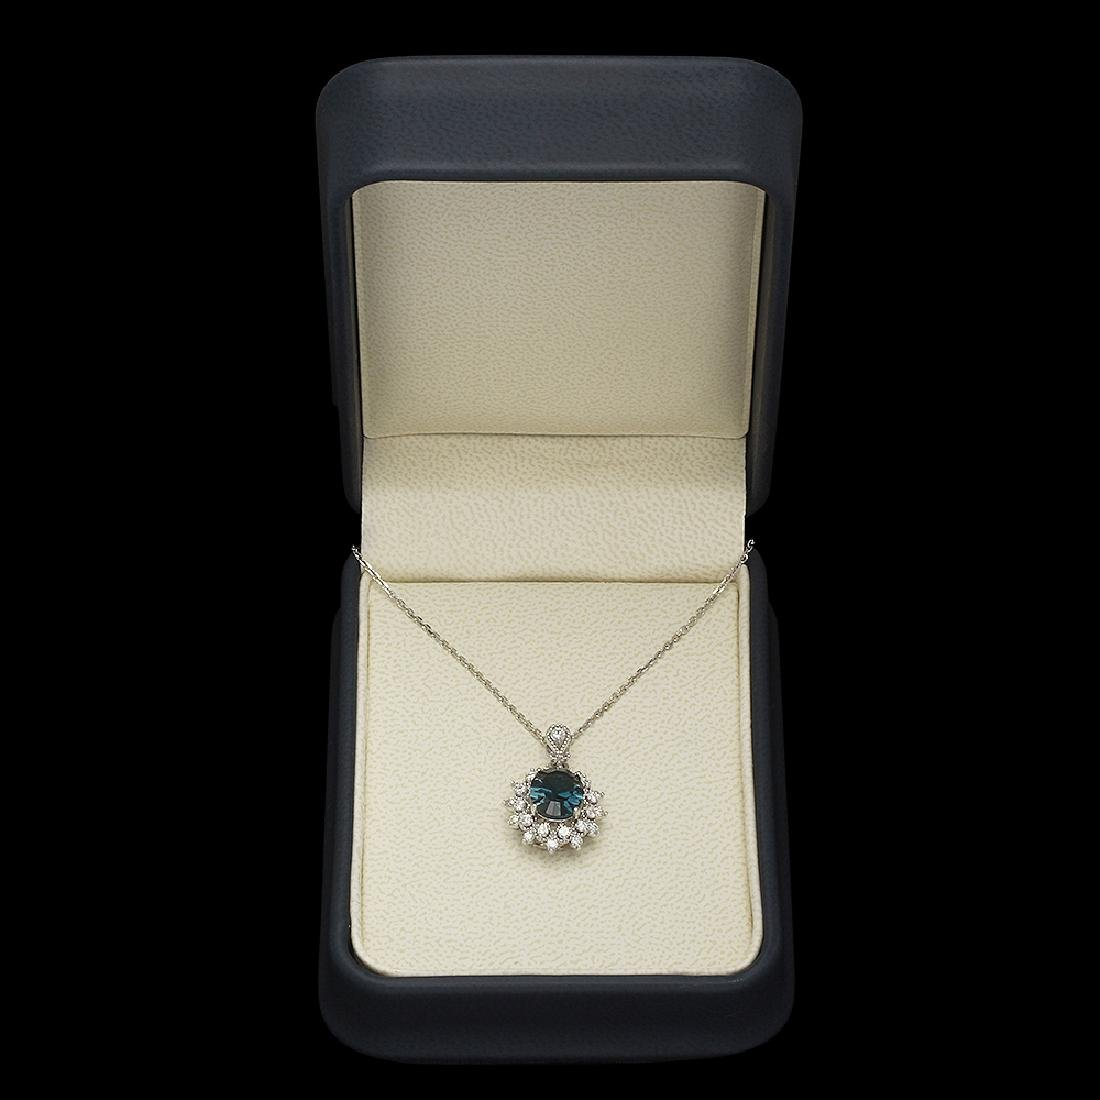 14K Gold 2.89ct Topaz 0.55ct Diamond Pendant - 3